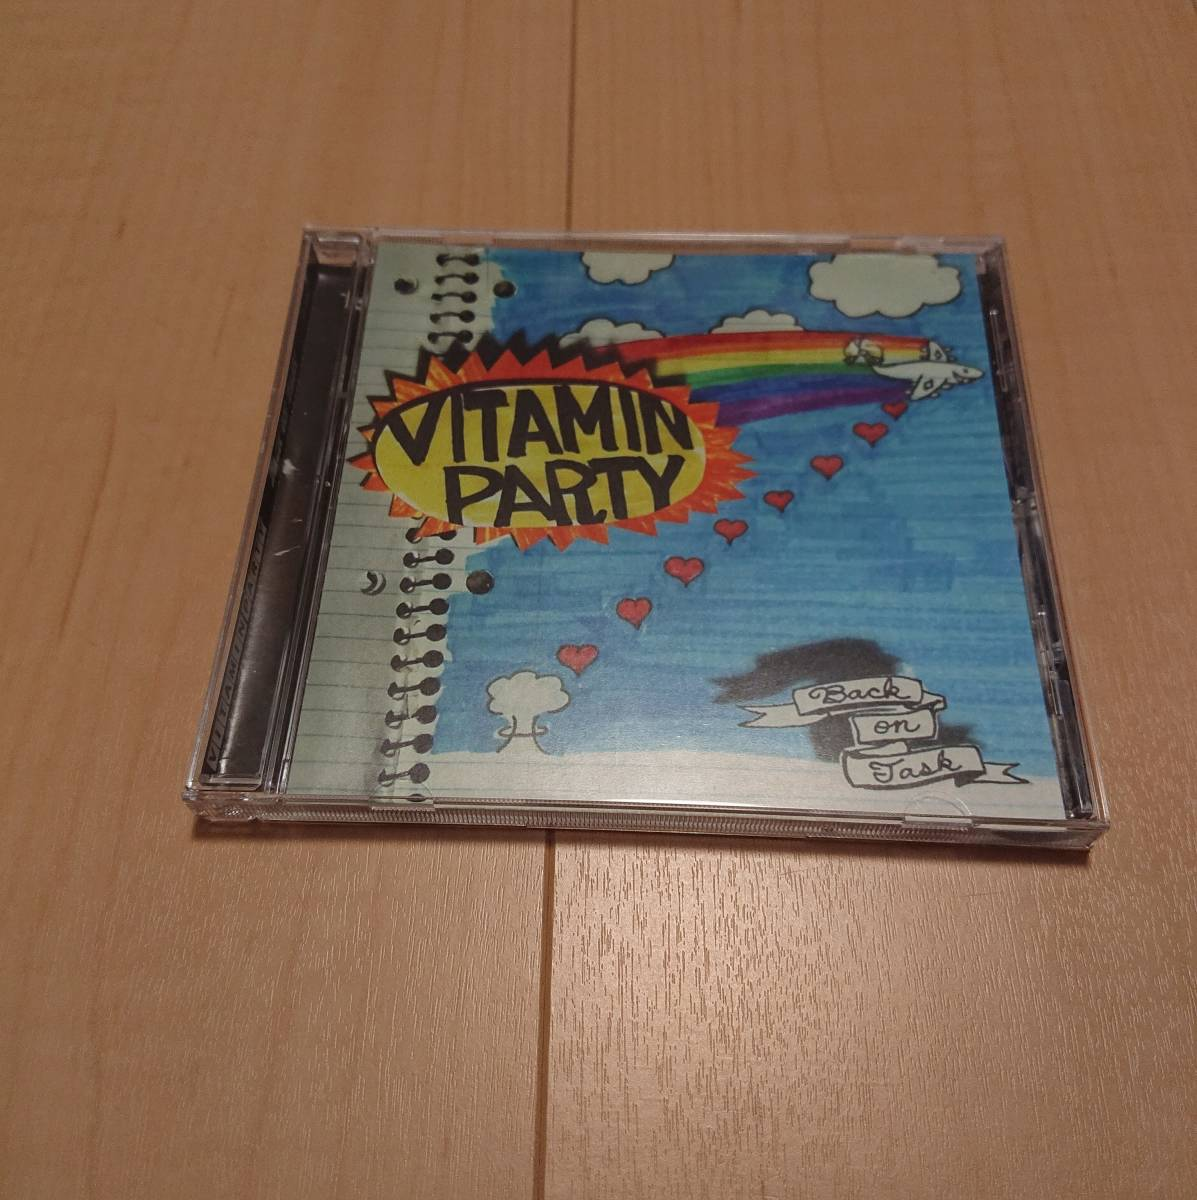 【Vitamin Party - Back On Task】fifteen look out plow inited pop punk